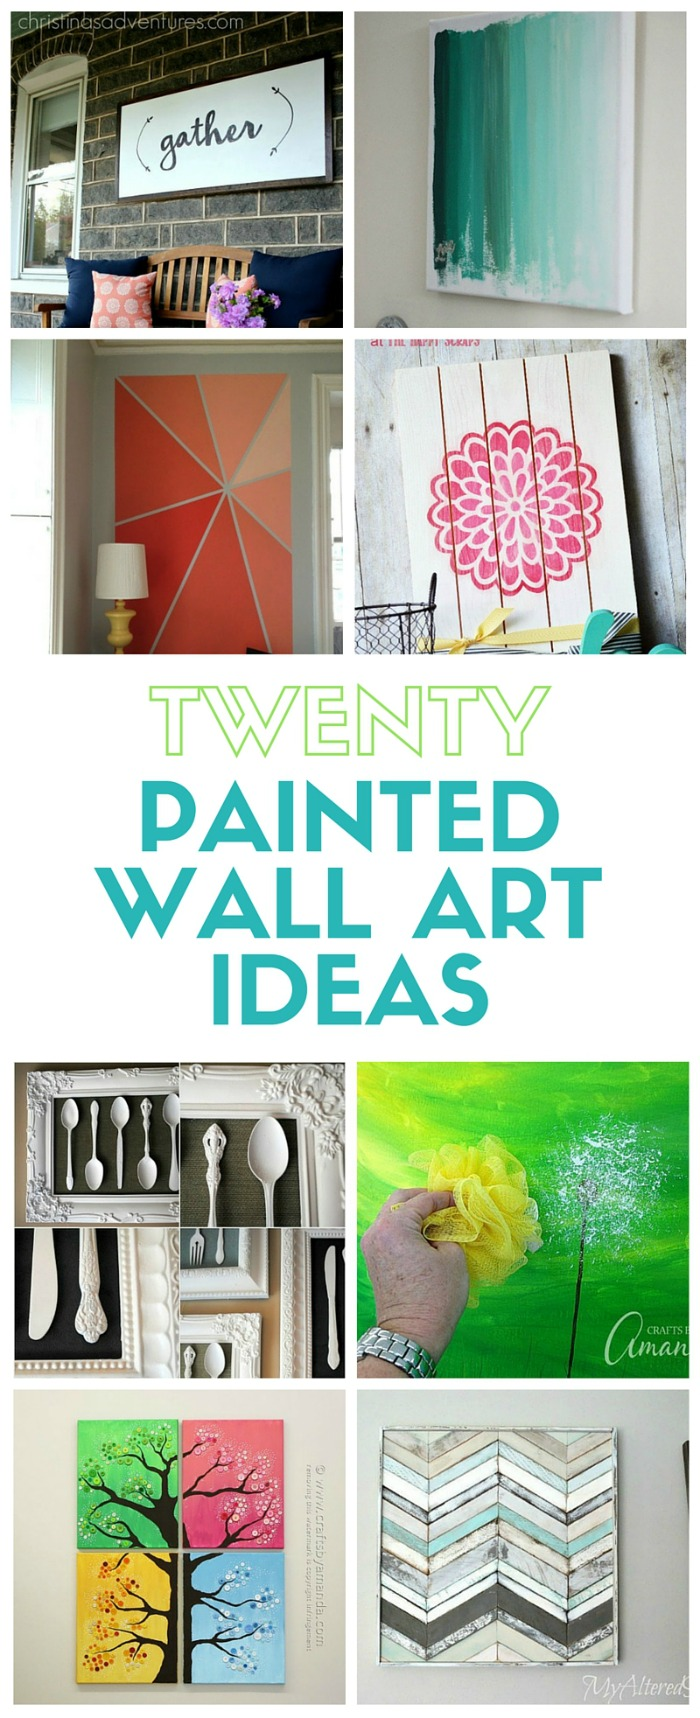 Create Your Own Wall Art 20 painted wall art ideas - the crafty blog stalker